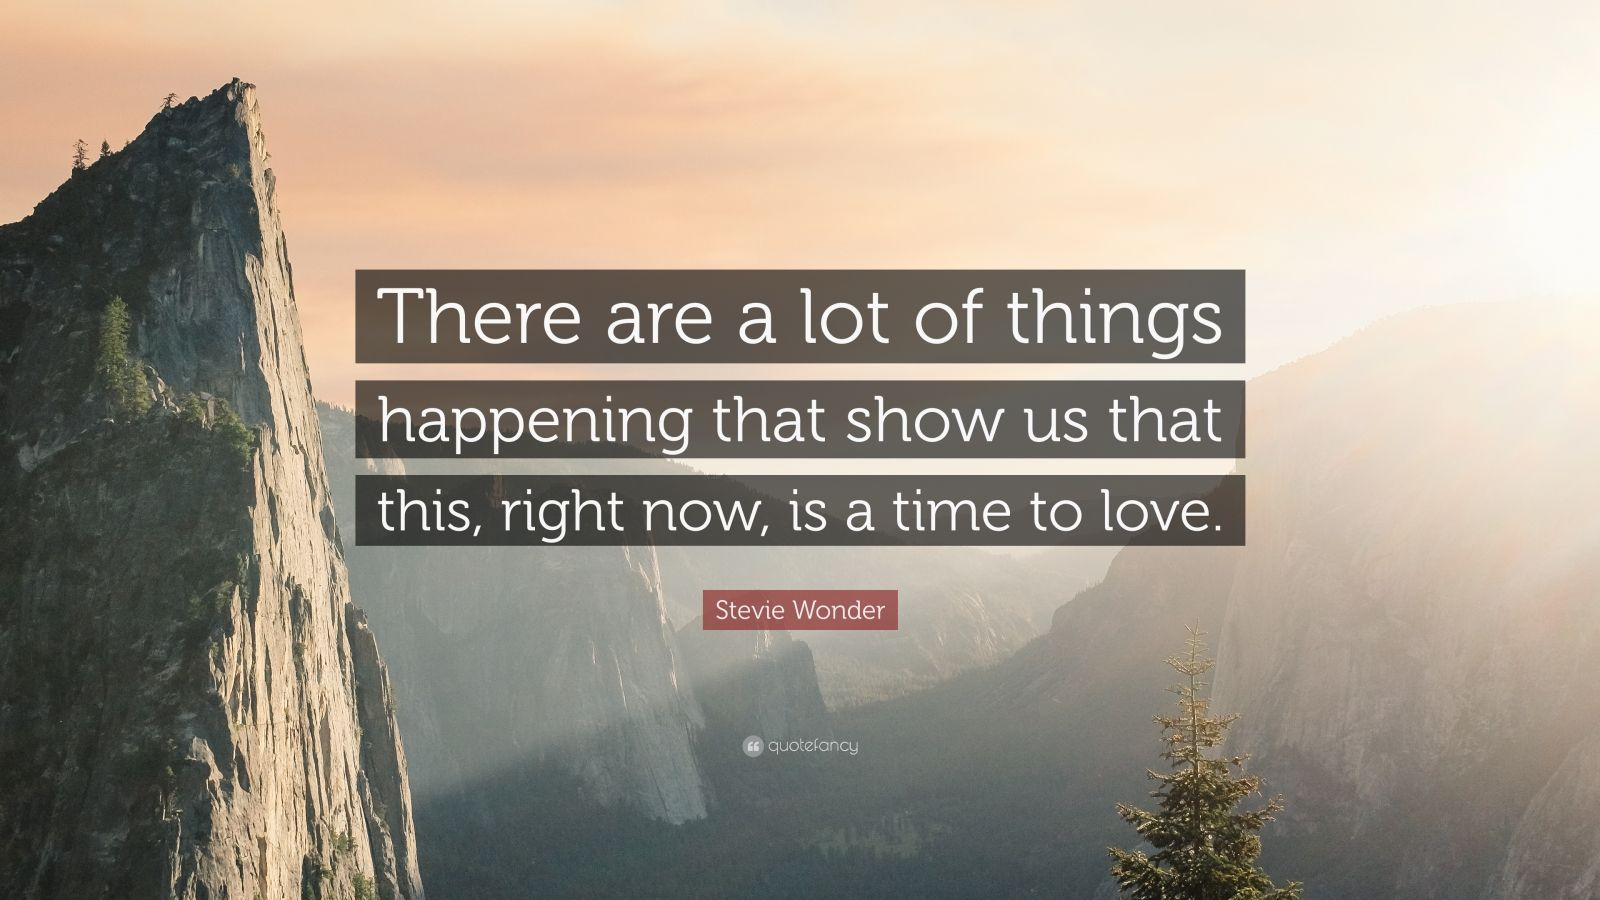 """Stevie Wonder Quote: """"There are a lot of things happening that show us that this, right now, is a time to love."""""""